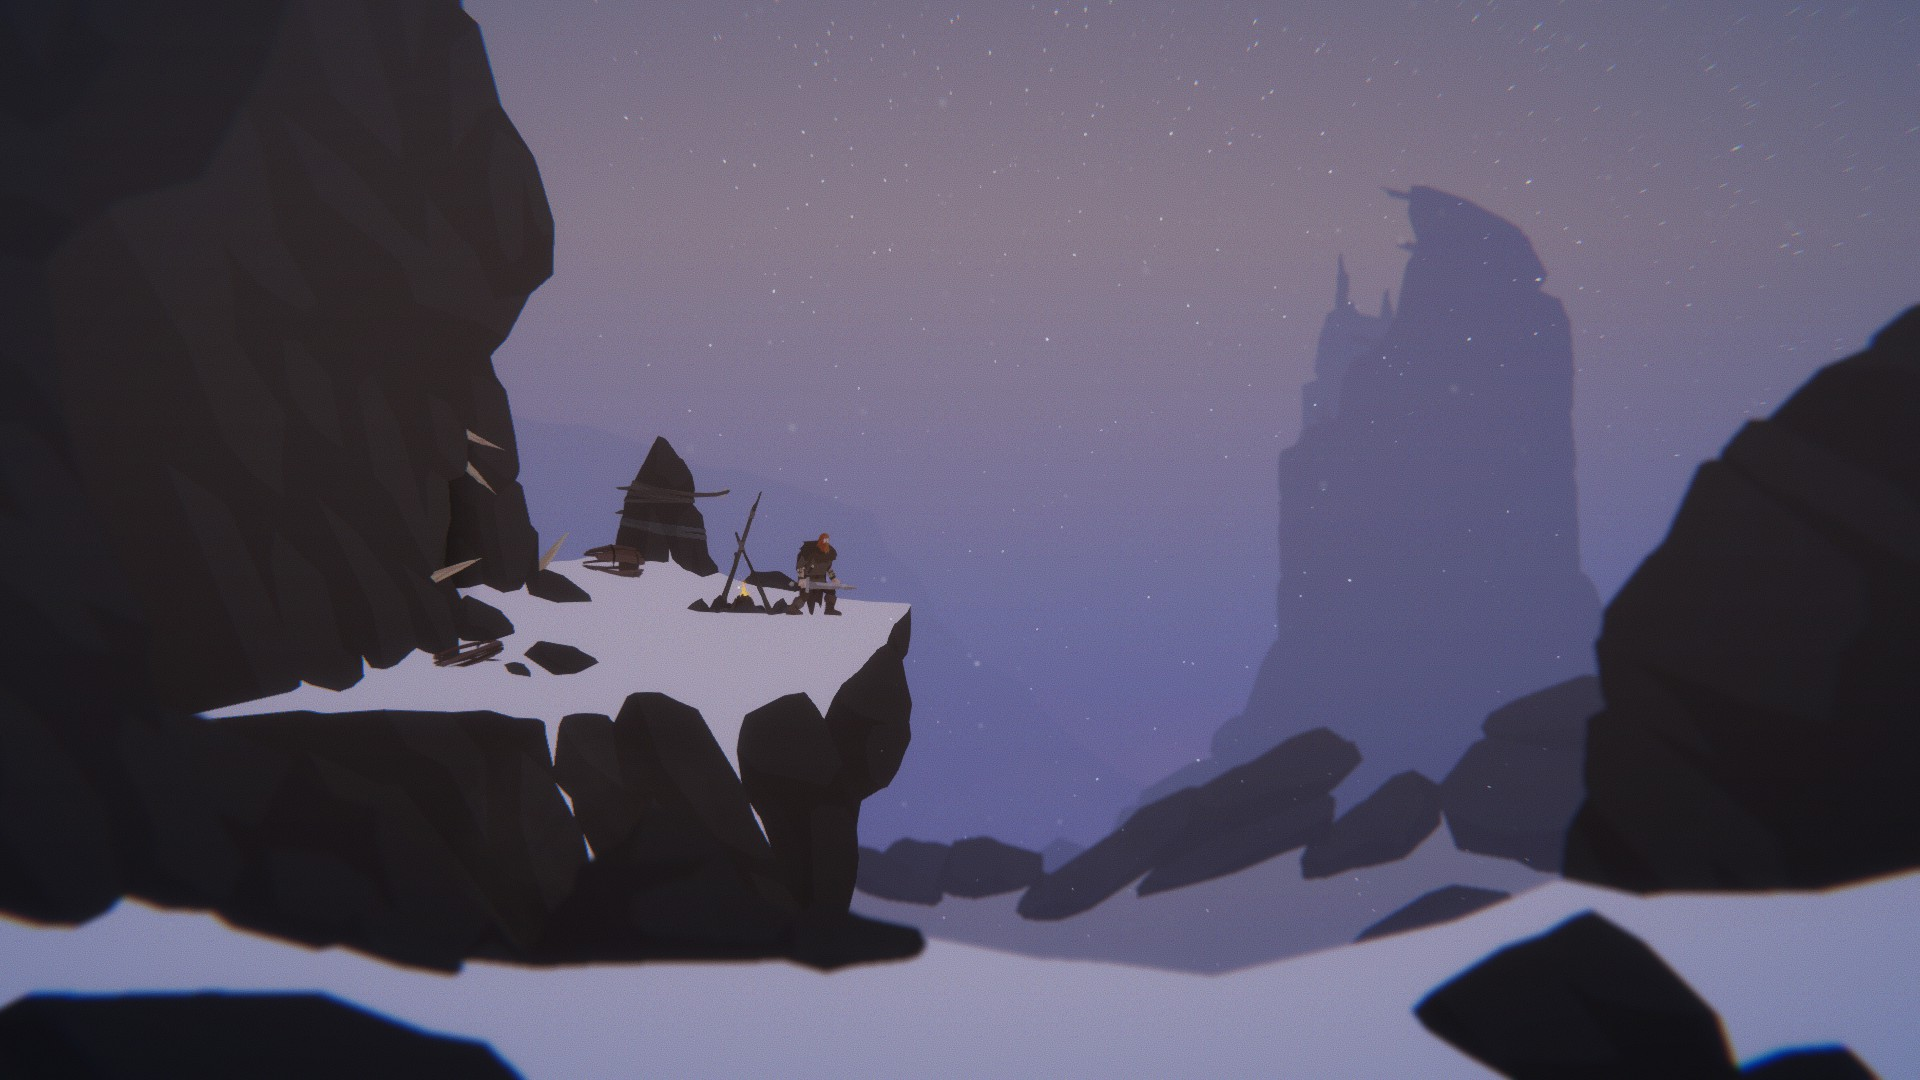 Our warrior man stands on a snowy outcrop next to a tiny campfire. He holds his sword and looks outwards.